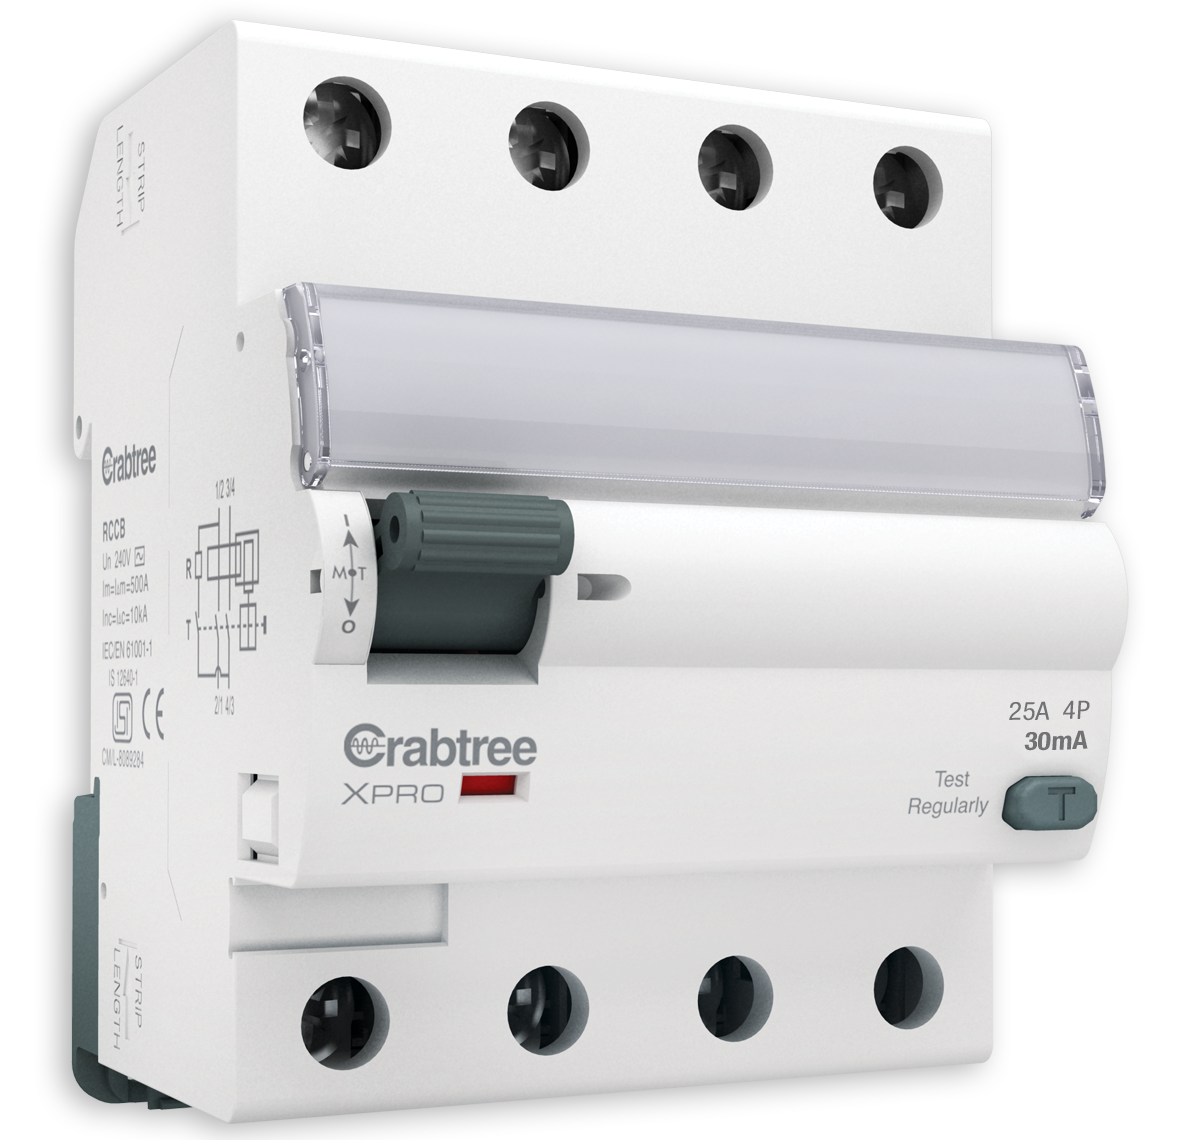 Crabtree - RCCB  A  Type FP 30mA-25A